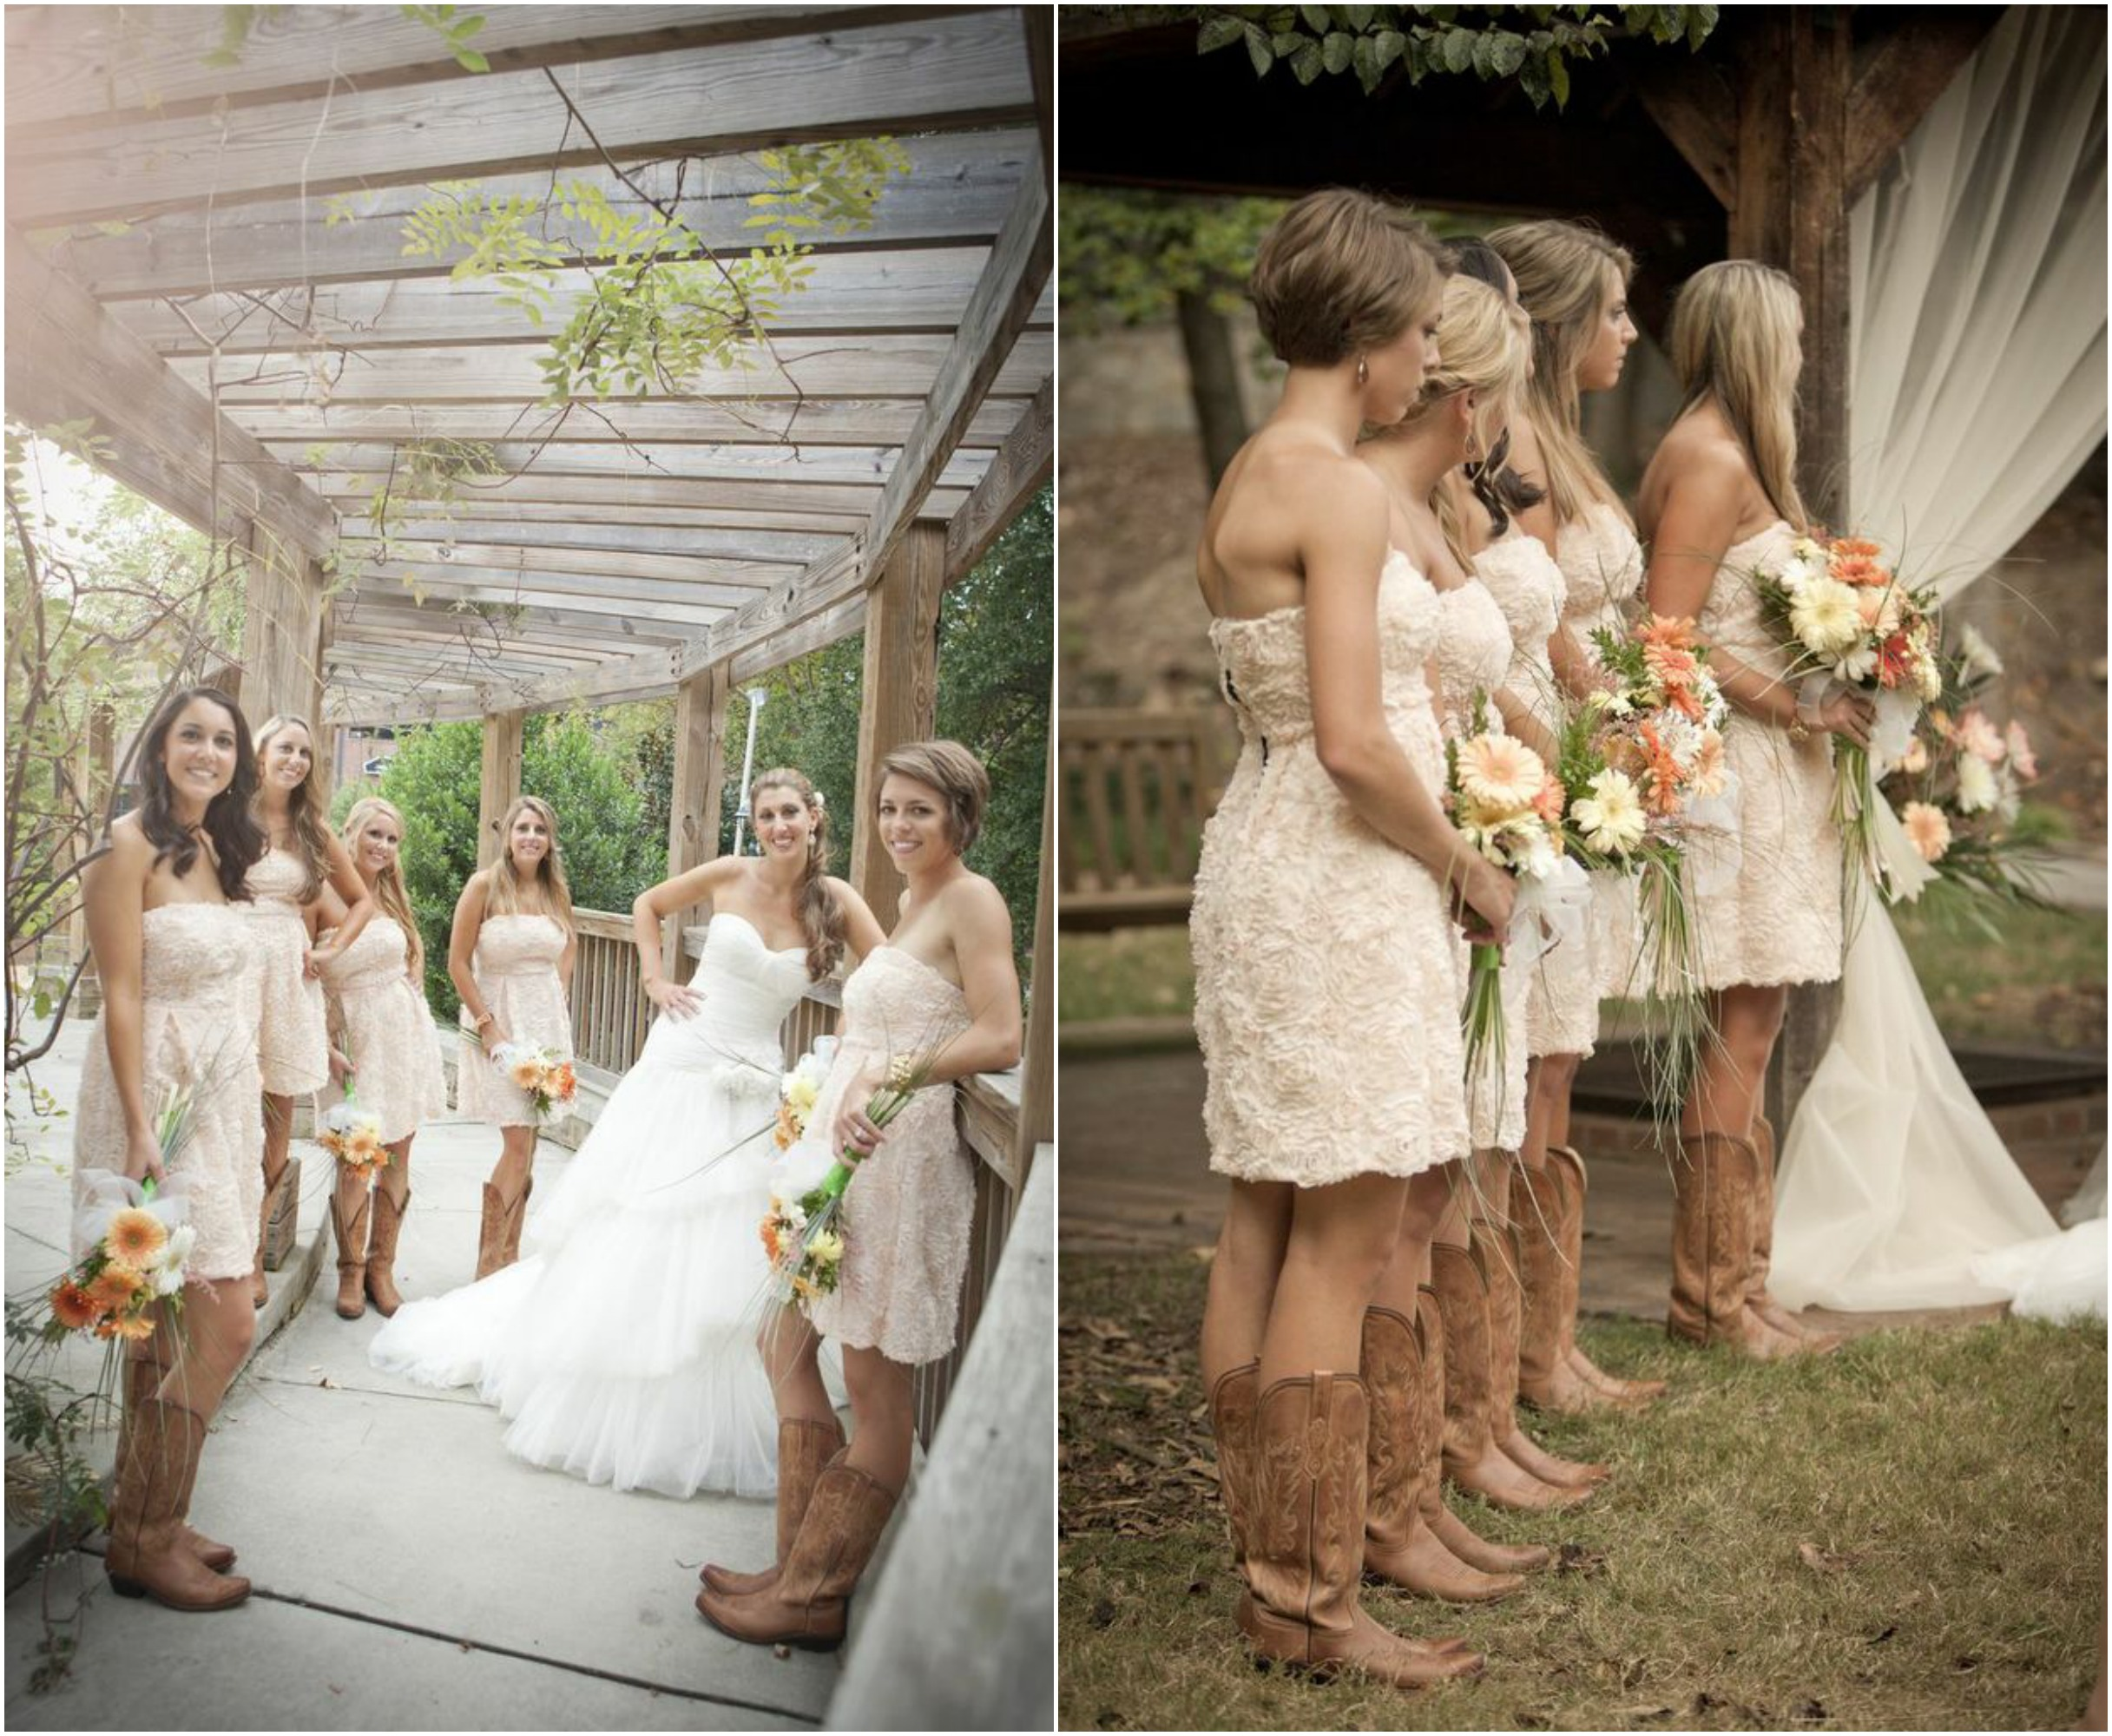 Bridesmaid Dresses For Wedding Rustic Wedding With Bridesmaids In Cowboy Boots Rustic Wedding Chic